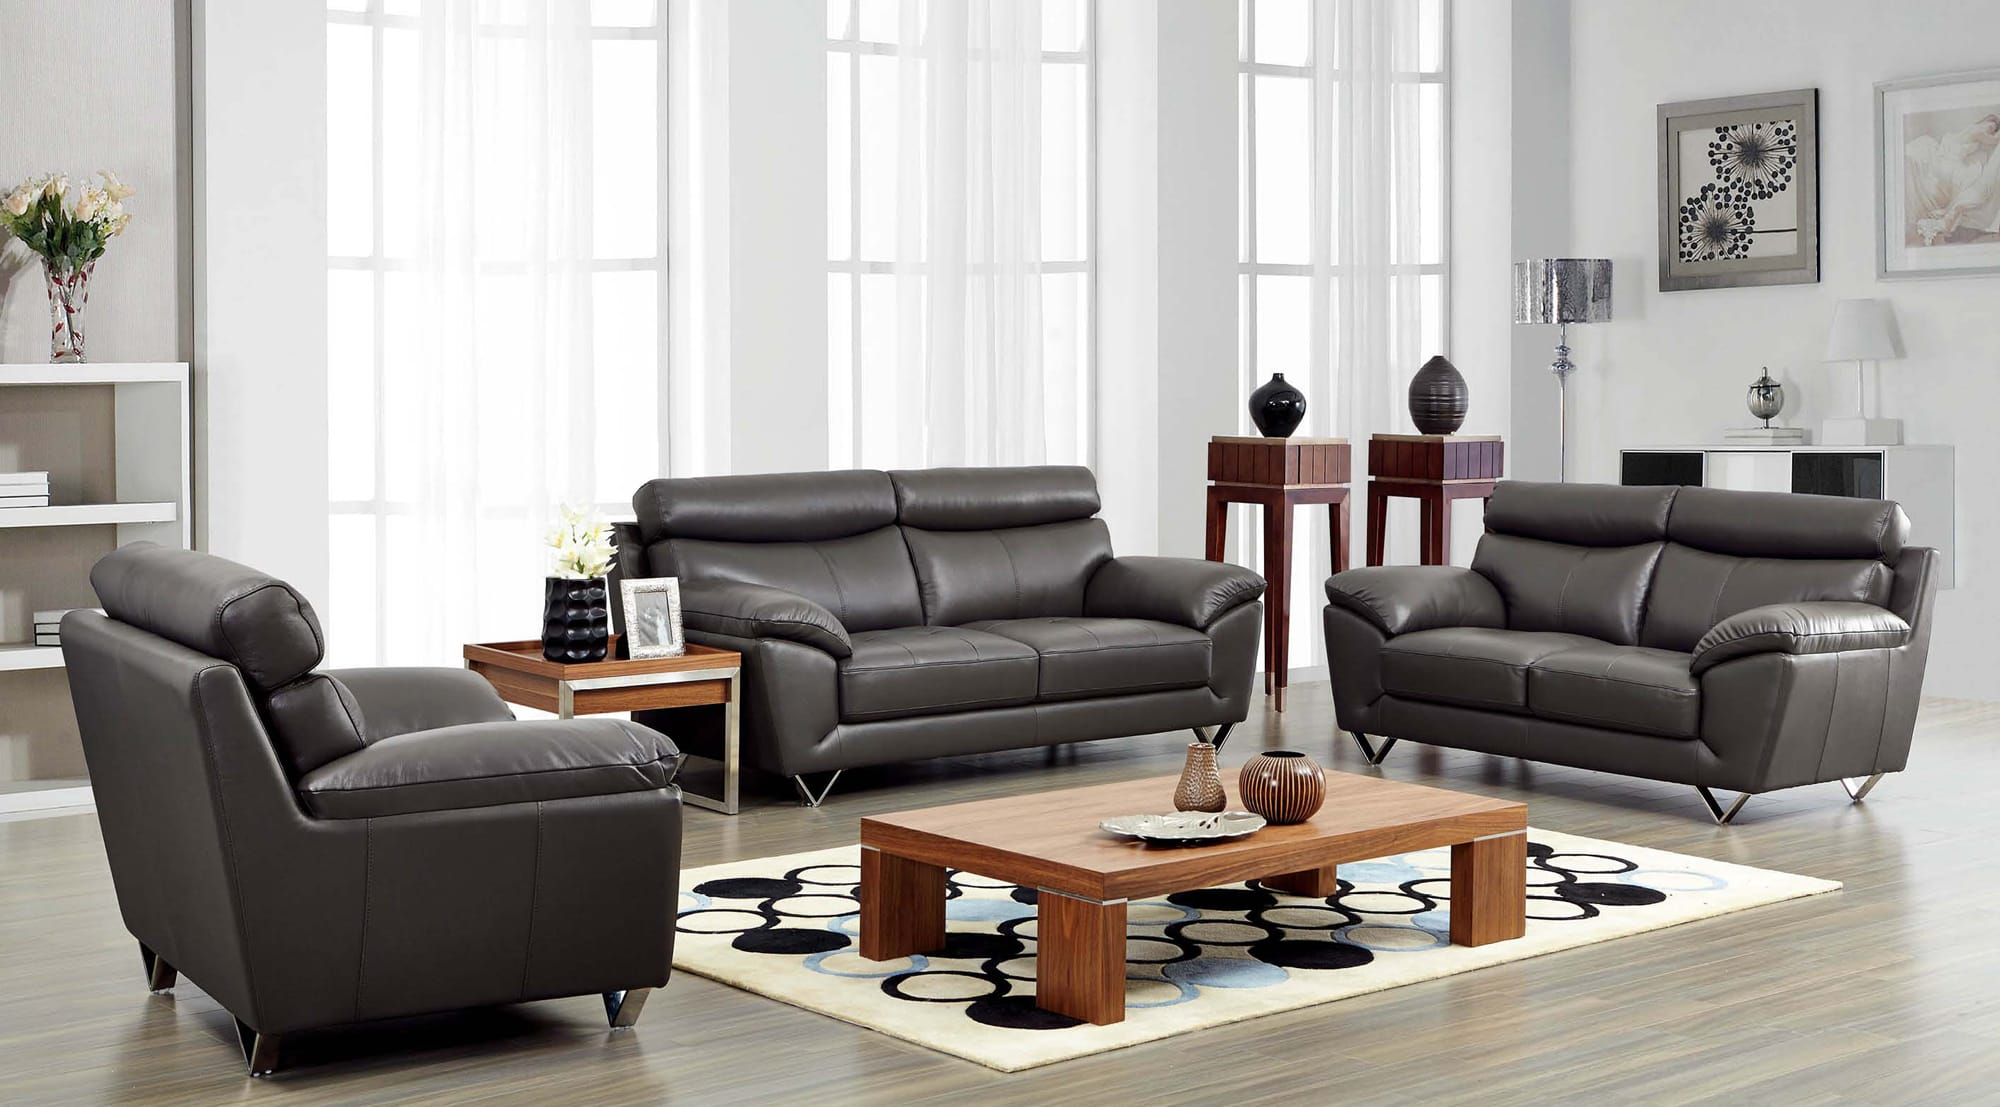 Accent Chairs To Go With Brown Leather Sofa 8049 Leather Chair By Esf